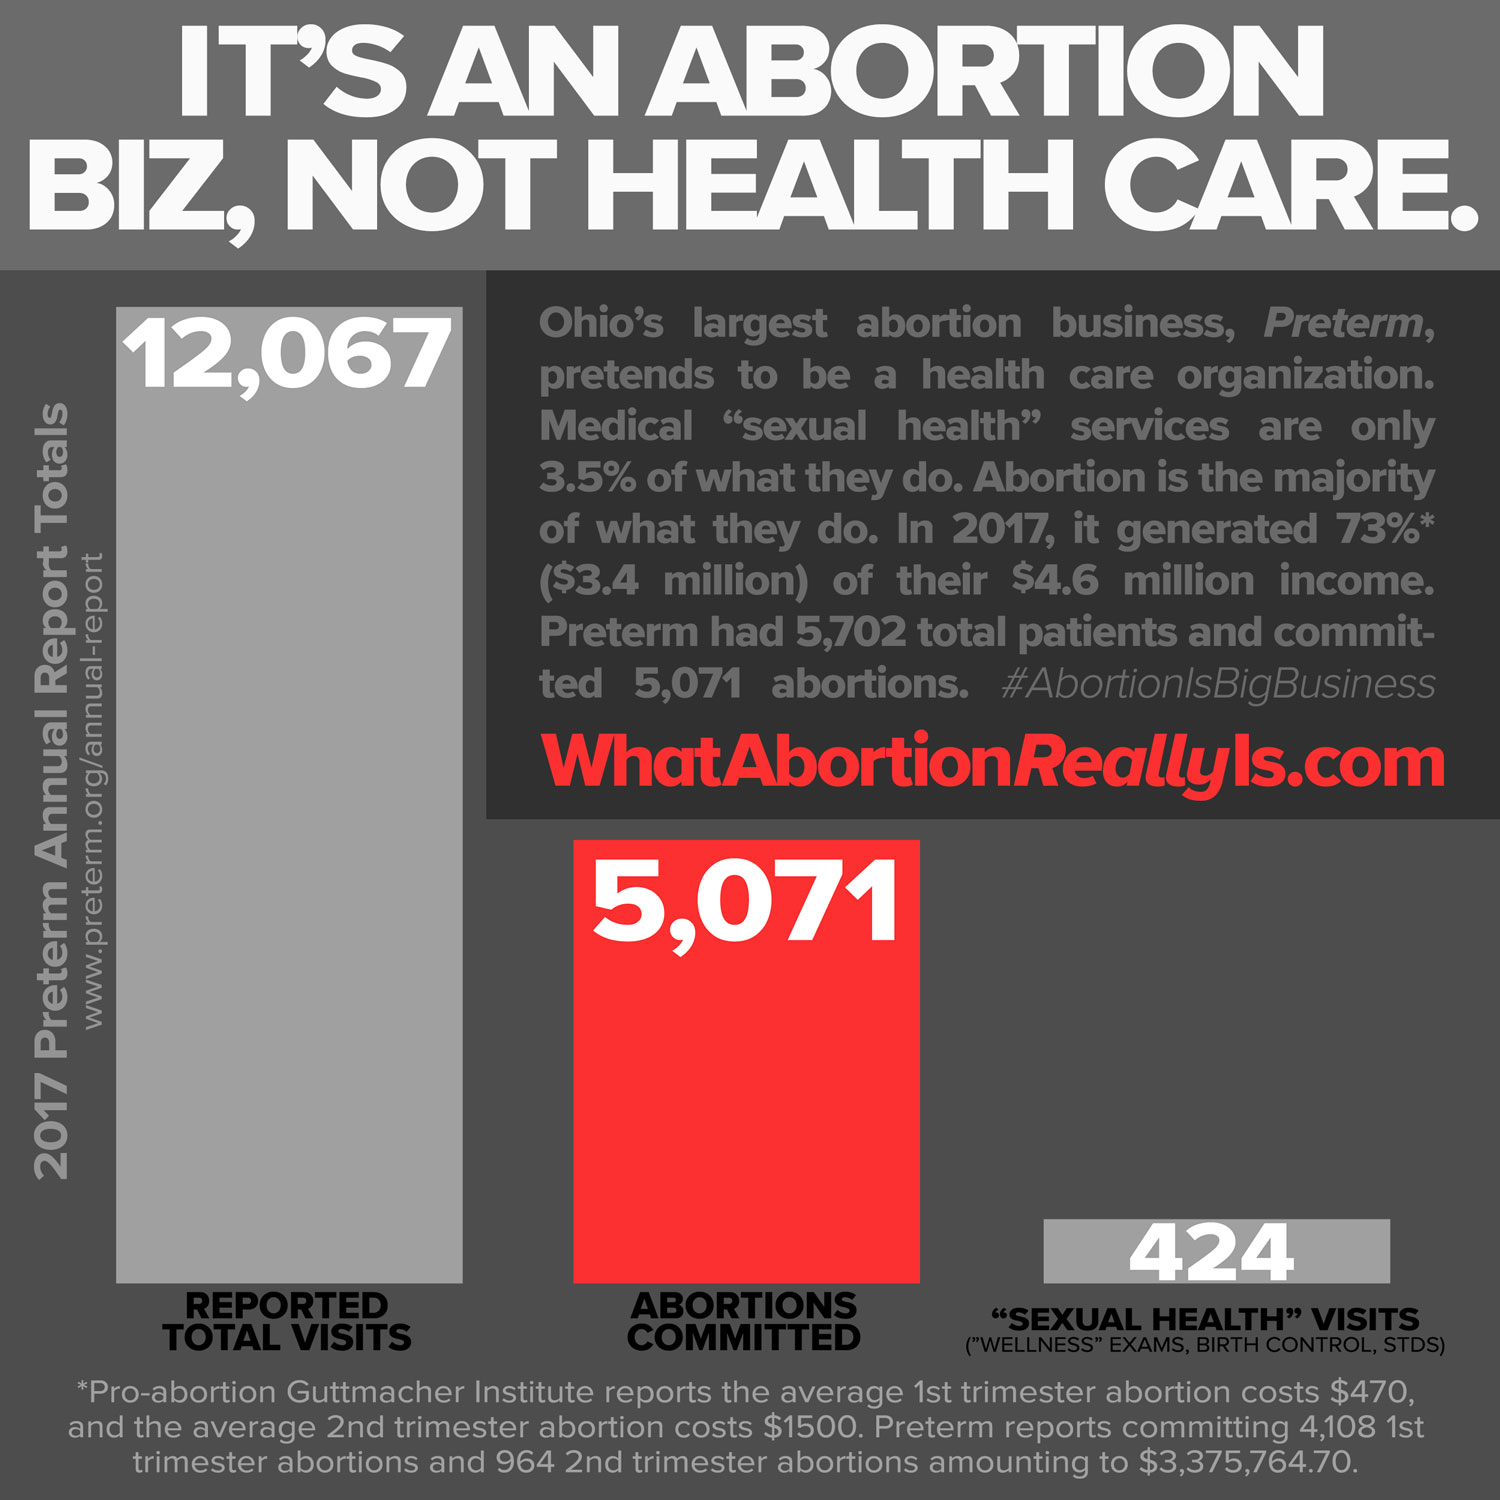 Preterm - Abortion is big business.